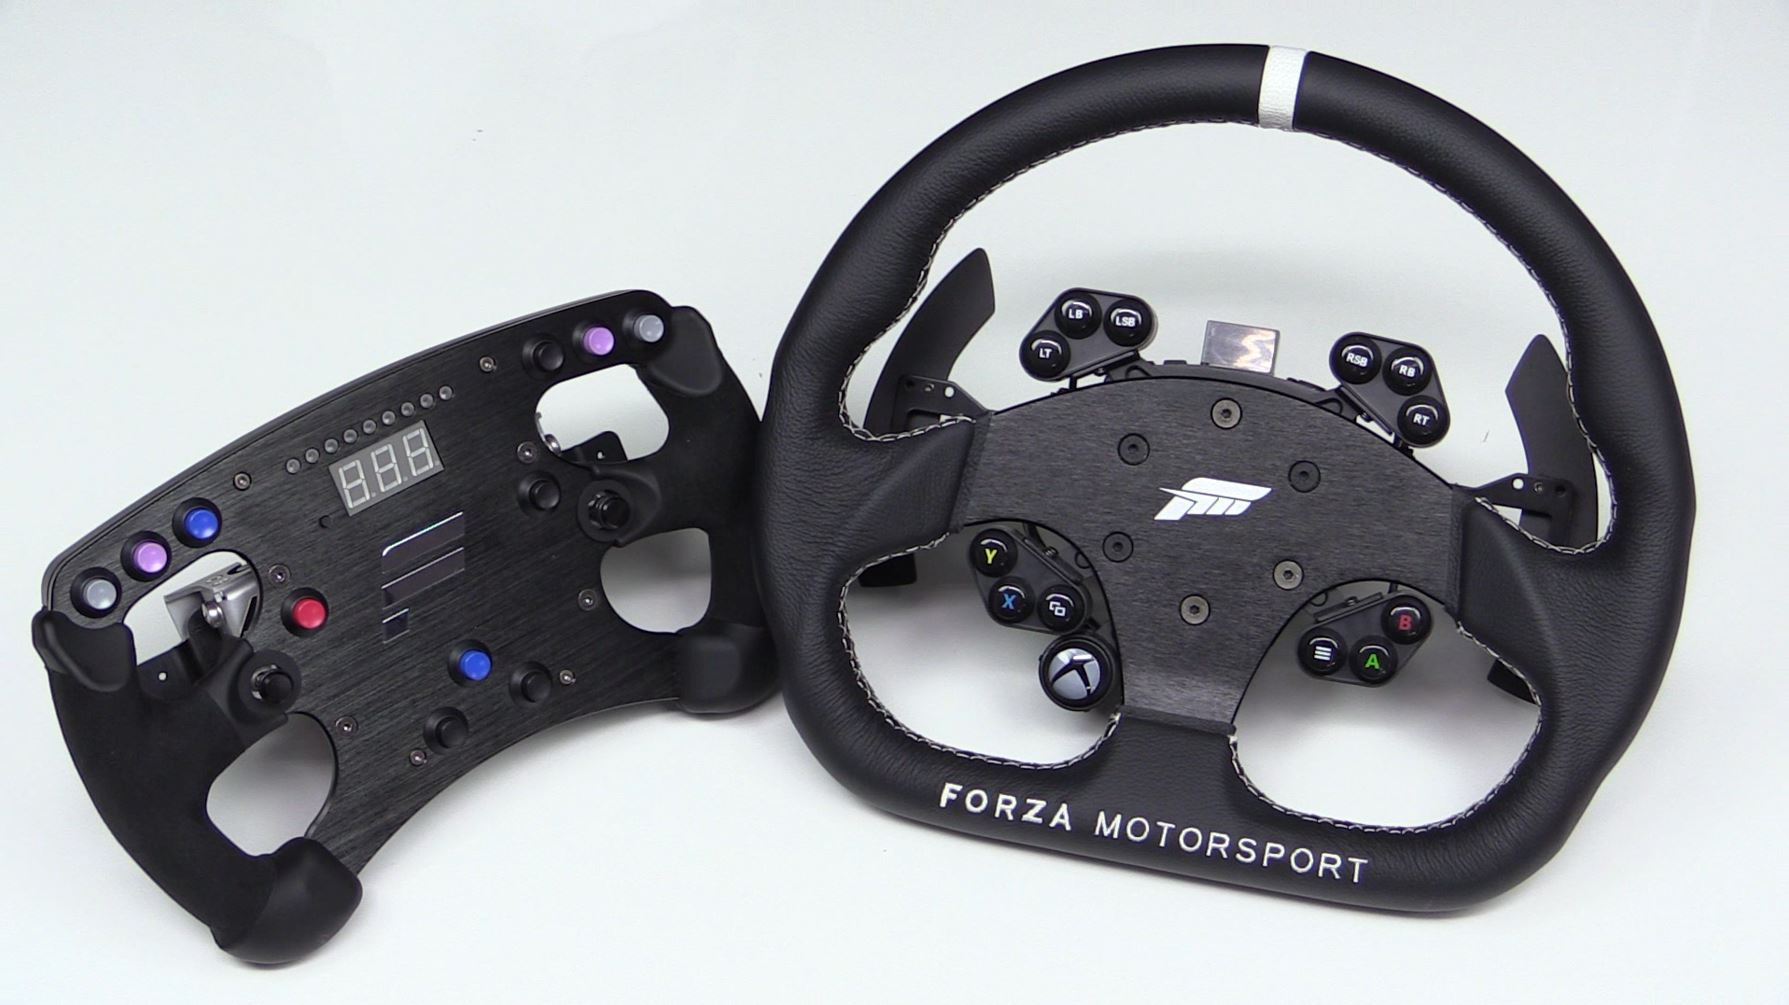 fanatec-wheels-with-creosim-mps-15